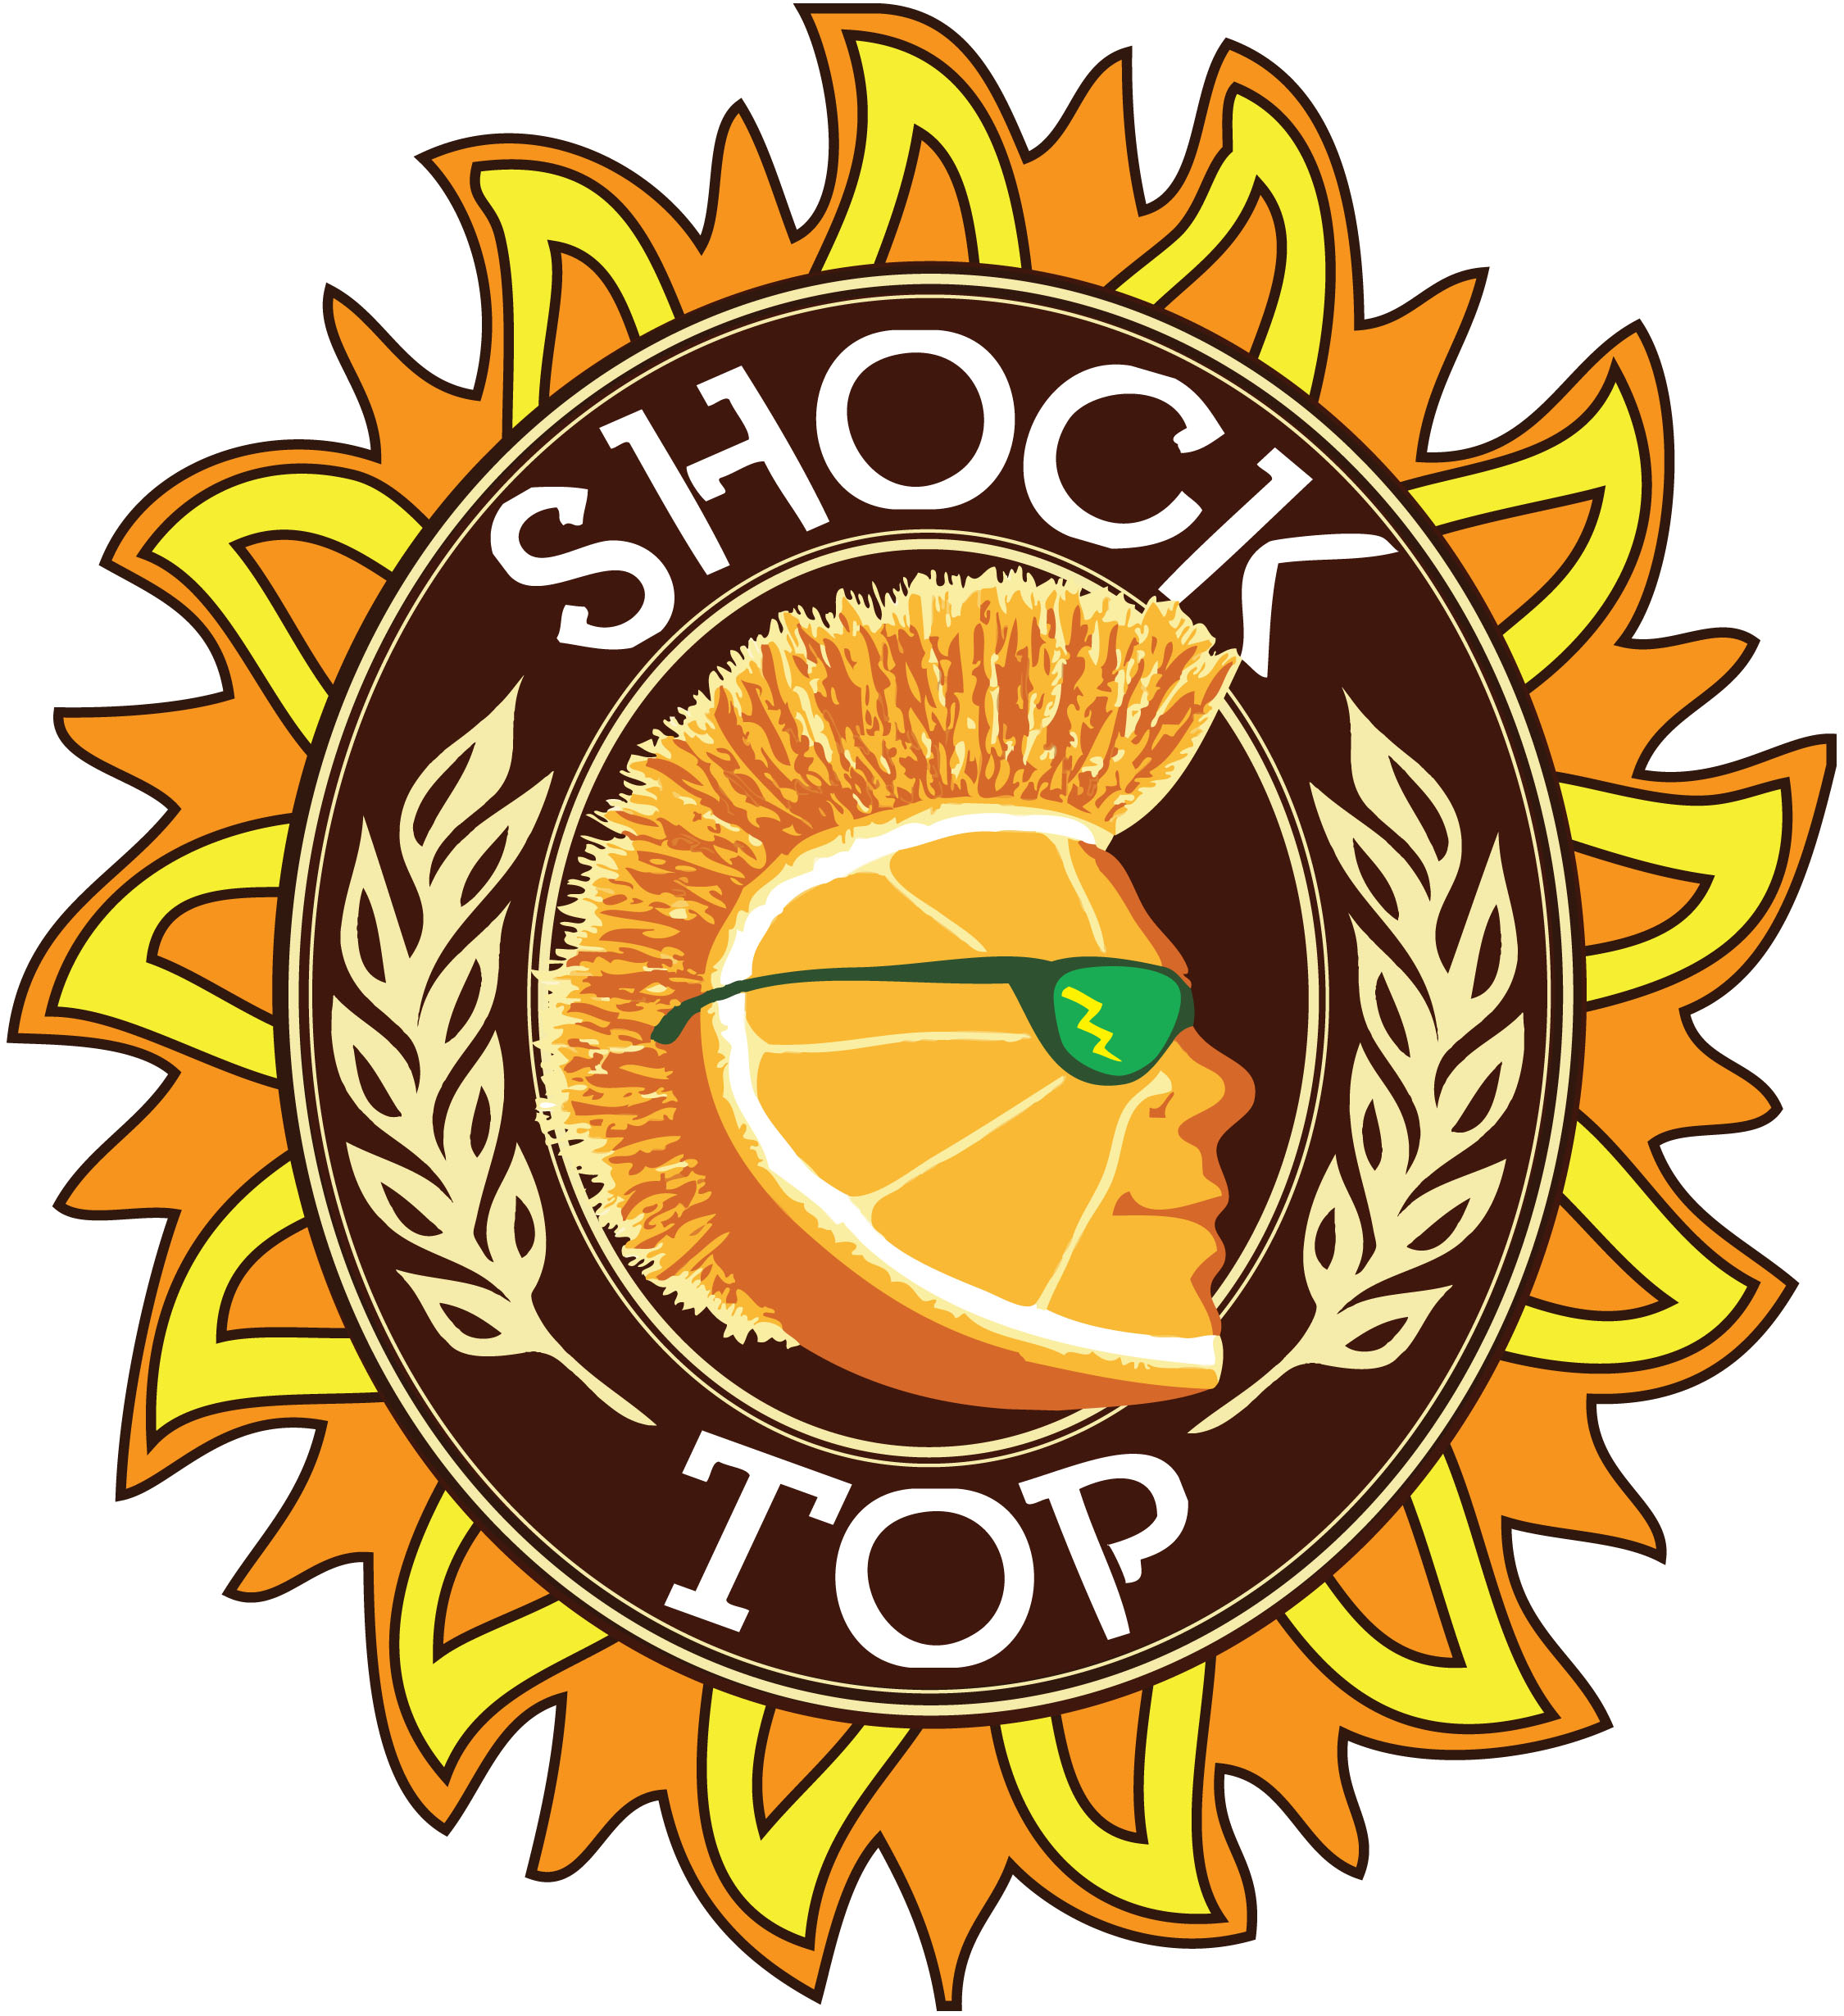 SHOCK TOP LOGO PROJECT: My Designs.